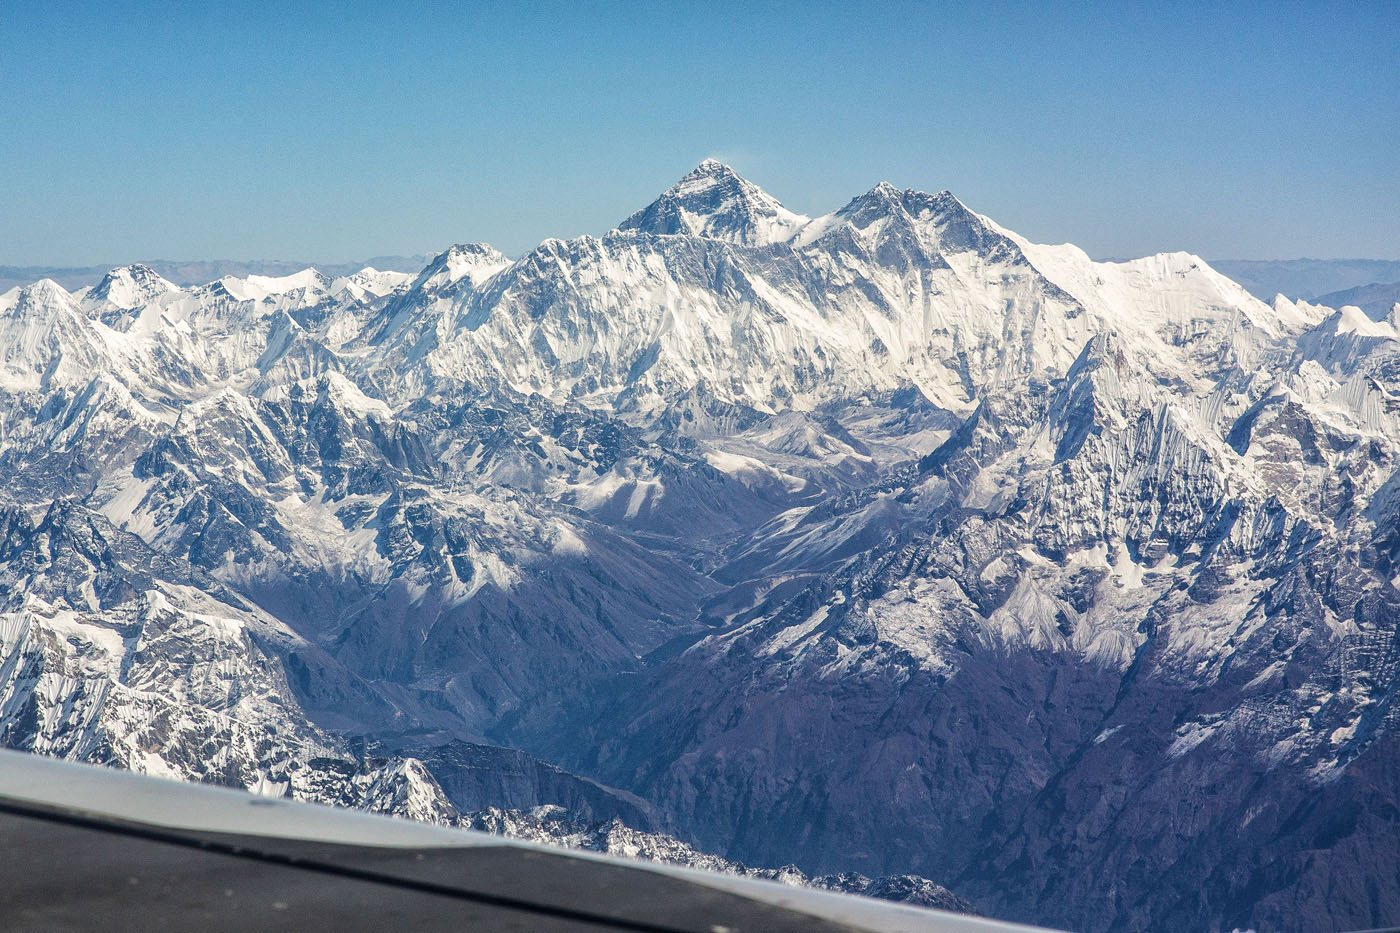 Everest from Airplane